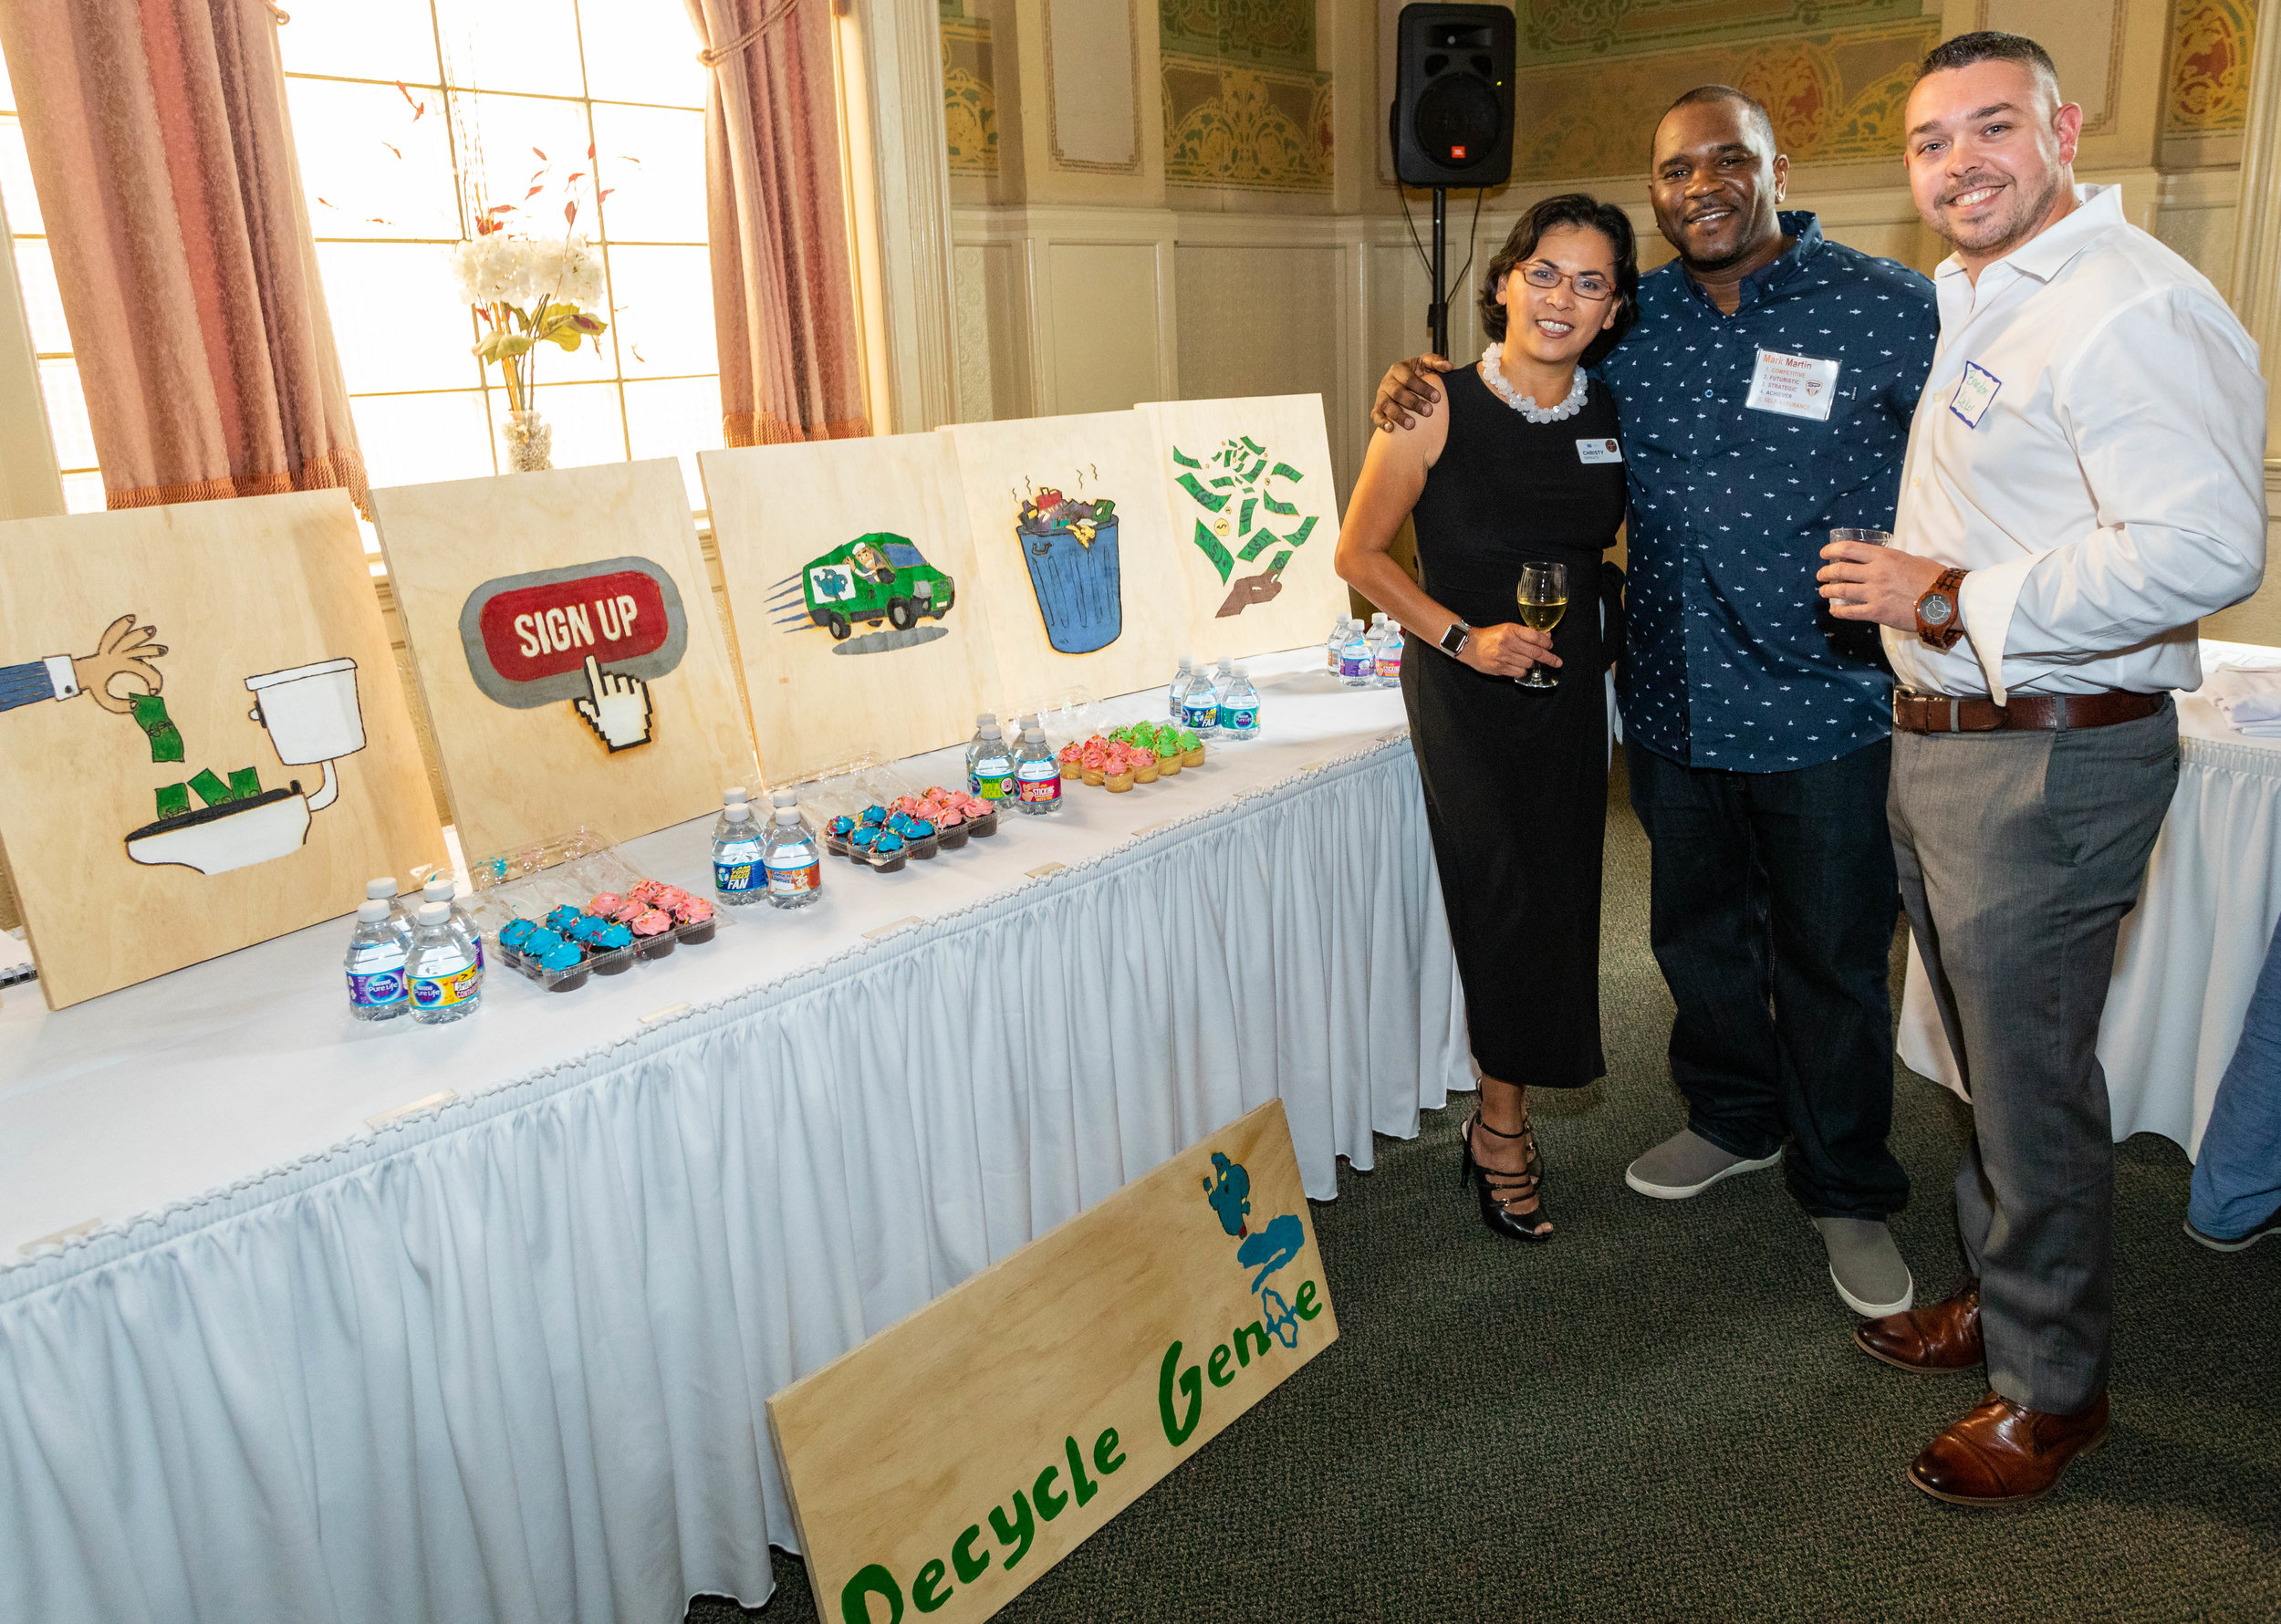 Mark exhibiting Recycle Genie at the SEA Showcase